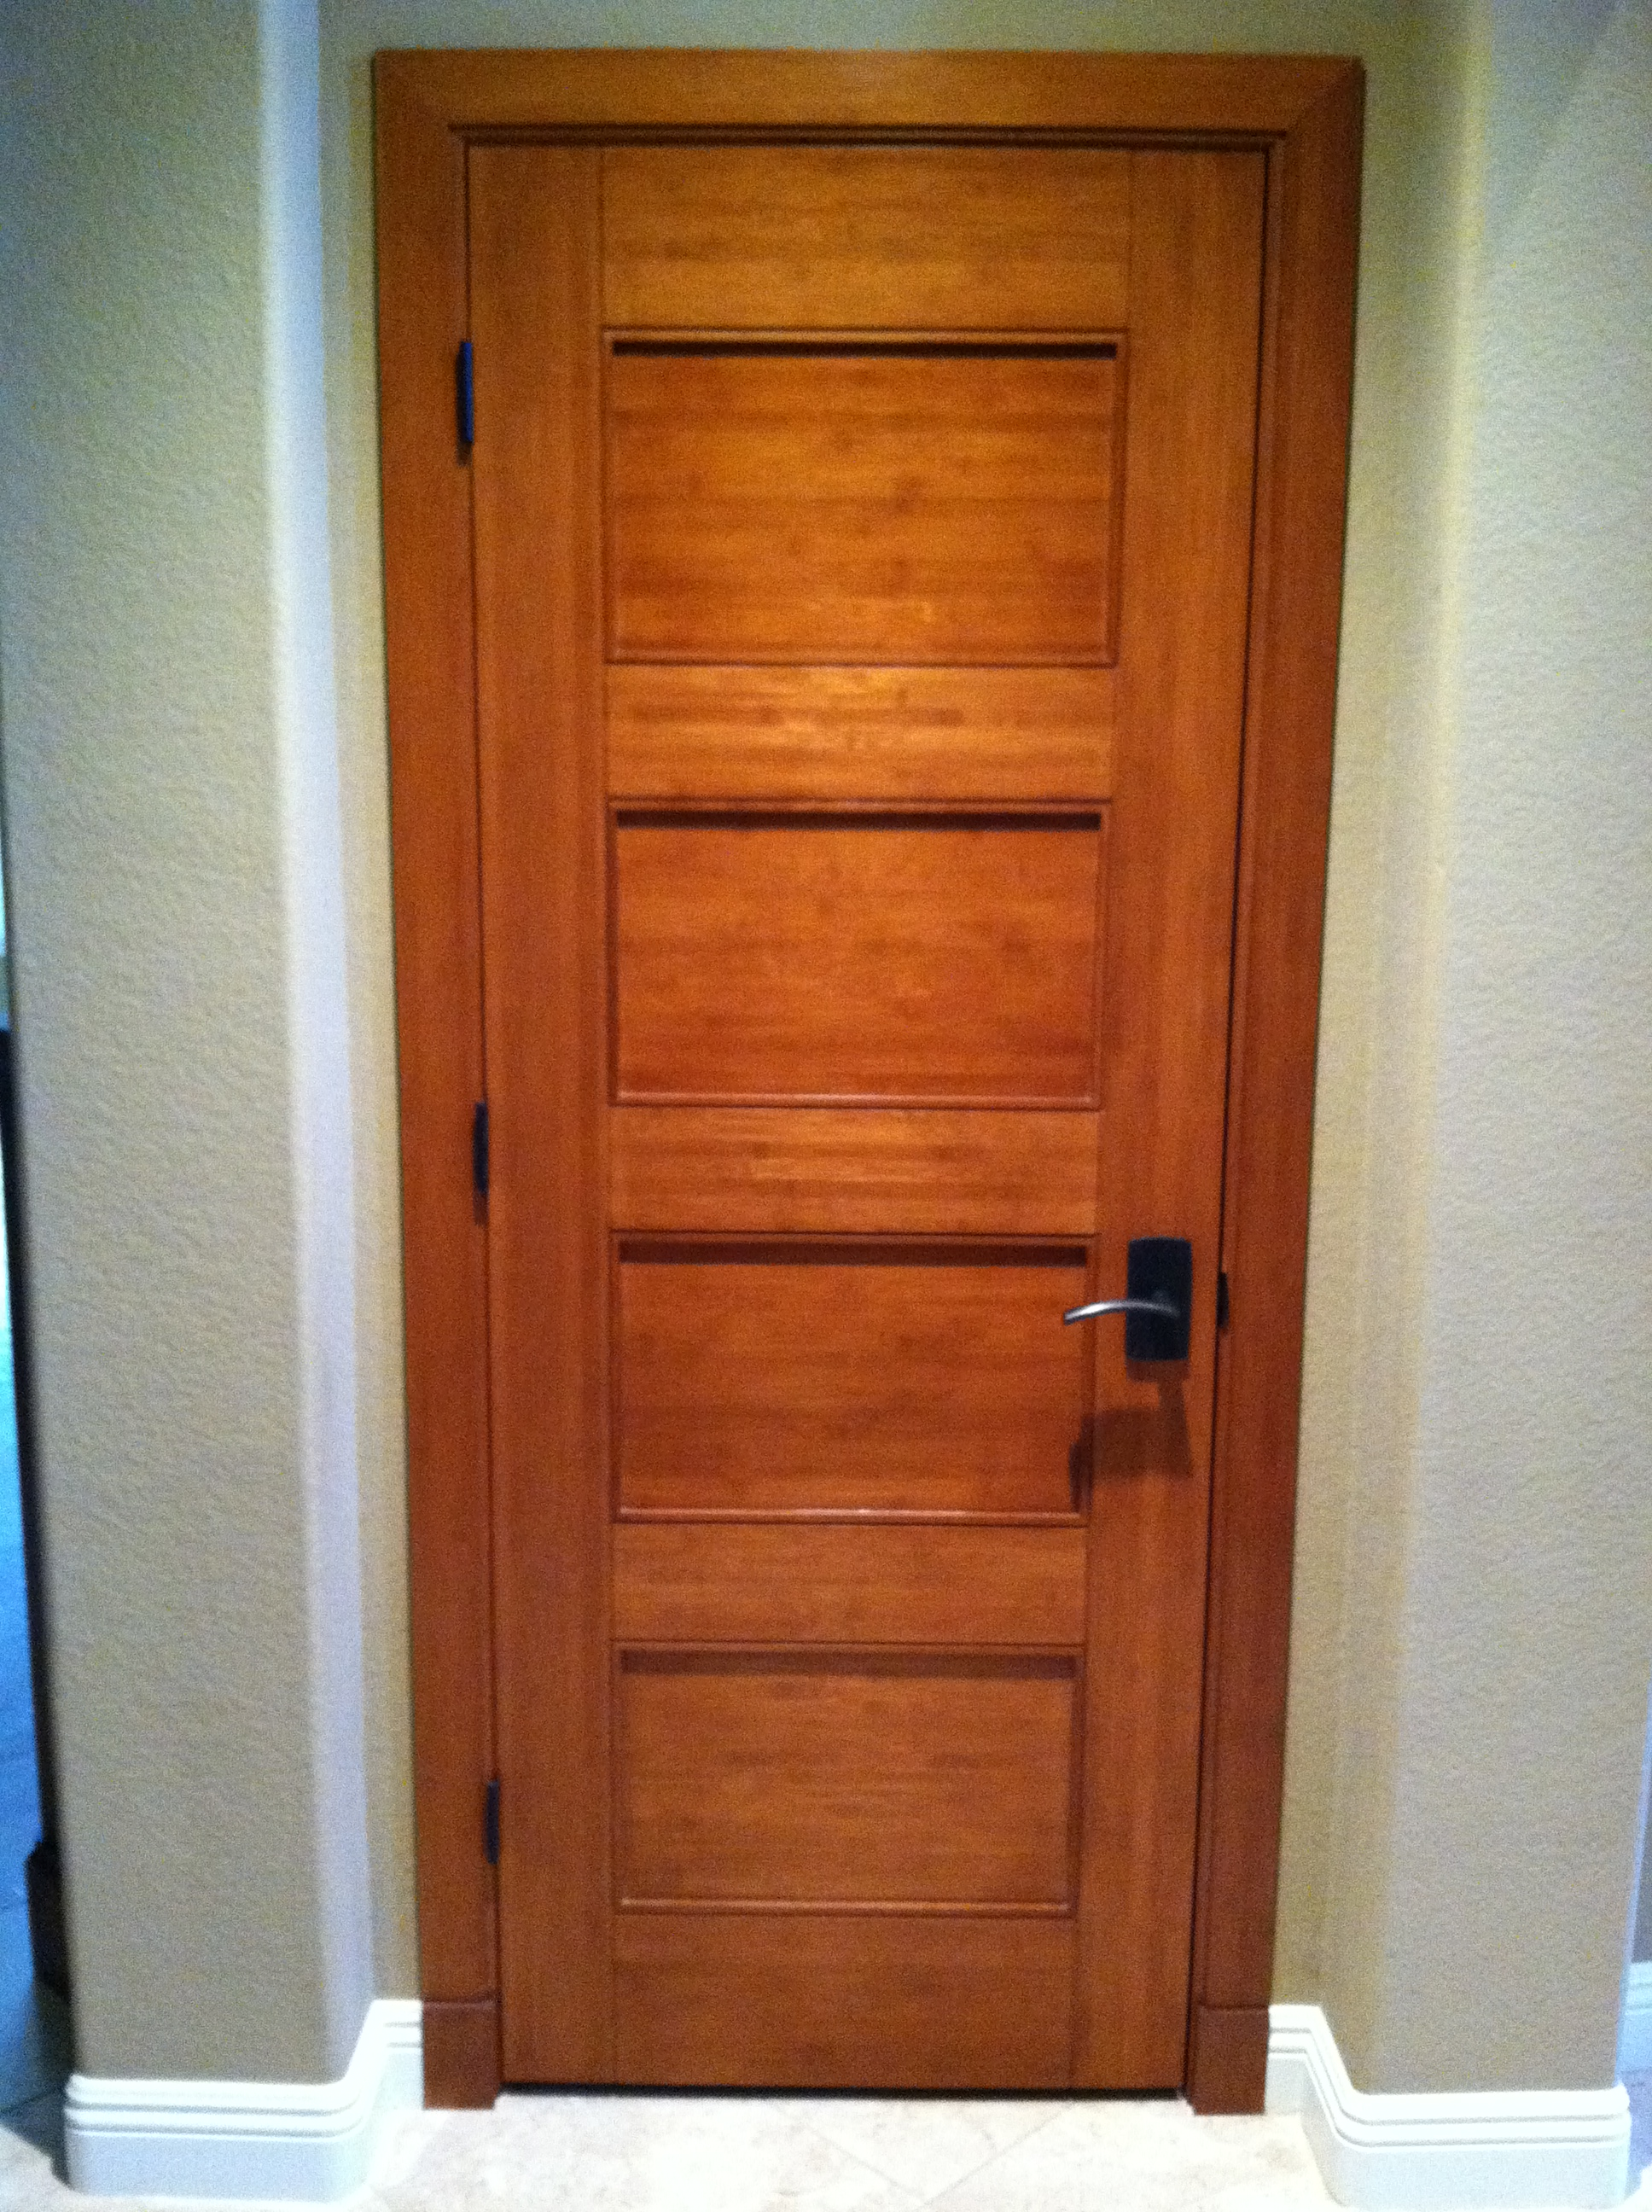 Carlsbad hall door ... & Interior Design by Elizabeth Aaron Interior Design pezcame.com